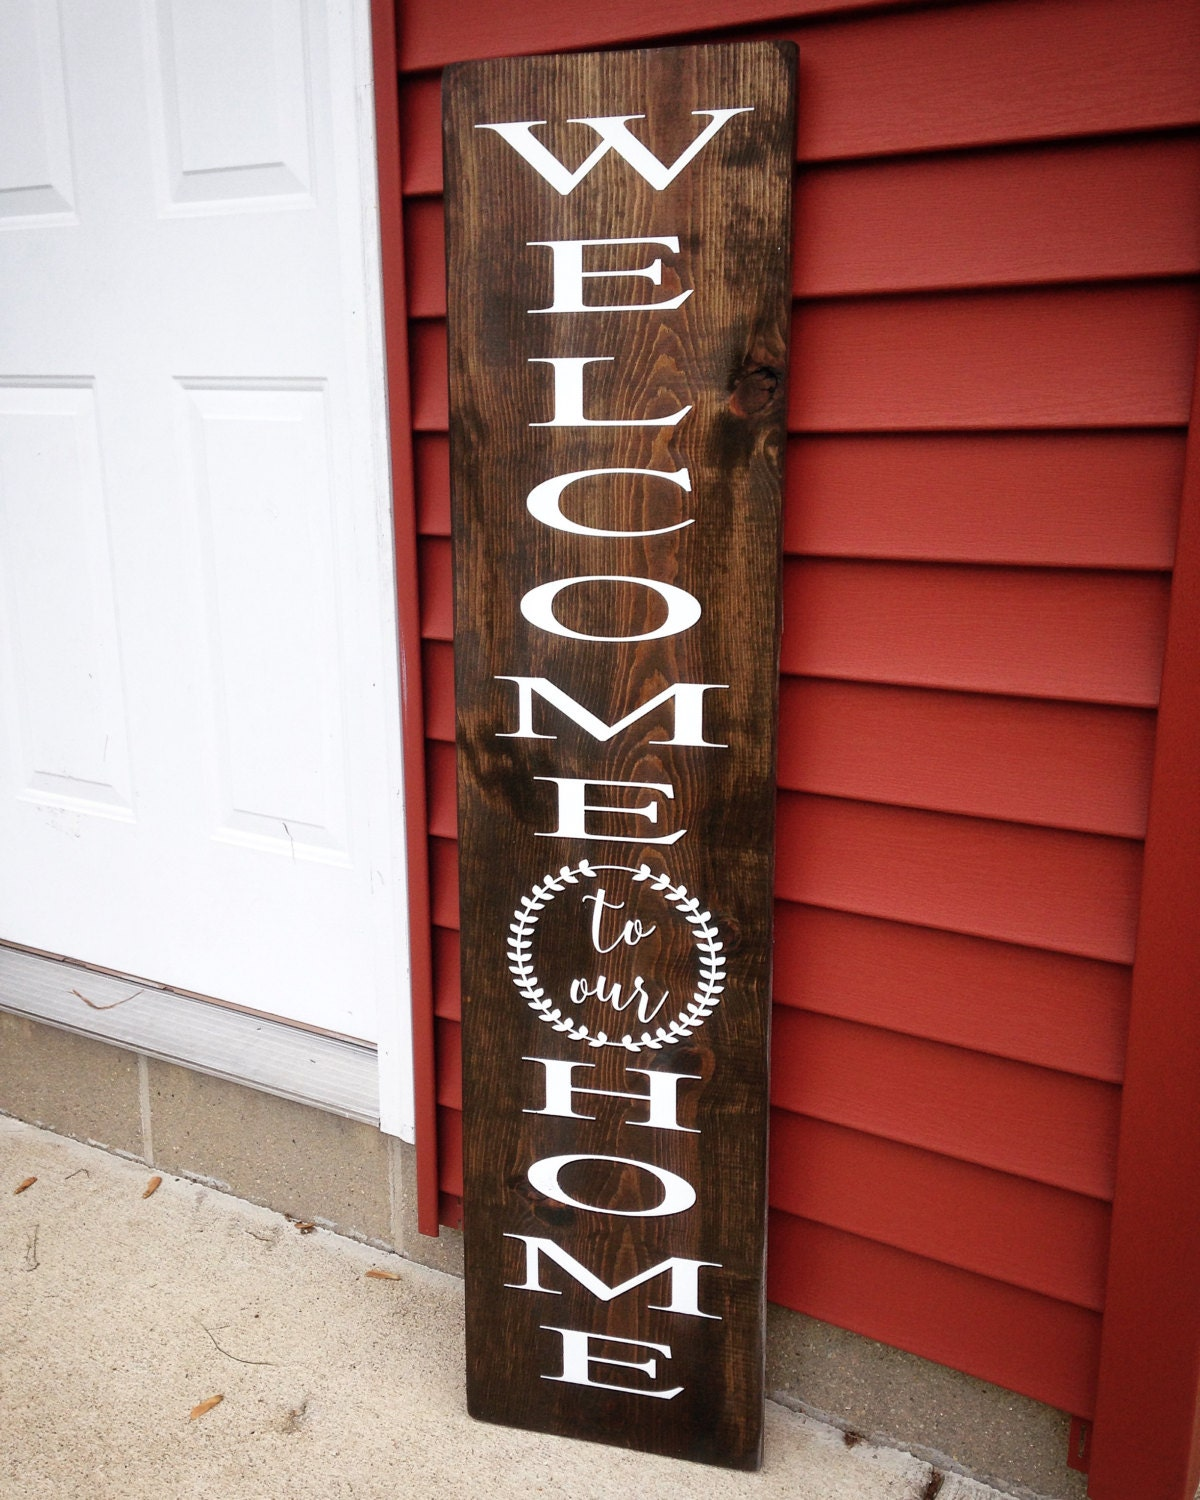 Welcome Front Porch Sign Wood Welcome Sign Front Porch Sign. States With No Fault Insurance. Human Services Associates Home Furnace Repair. Lakeside Dental Clinic Dentists In New Mexico. Sharepoint Enterprise Search. Universities Near Pittsburgh. California Insurance Agents Bates Creek Camp. Disk To Disk Backup Software. Colorado School Grants Startup Business Loans